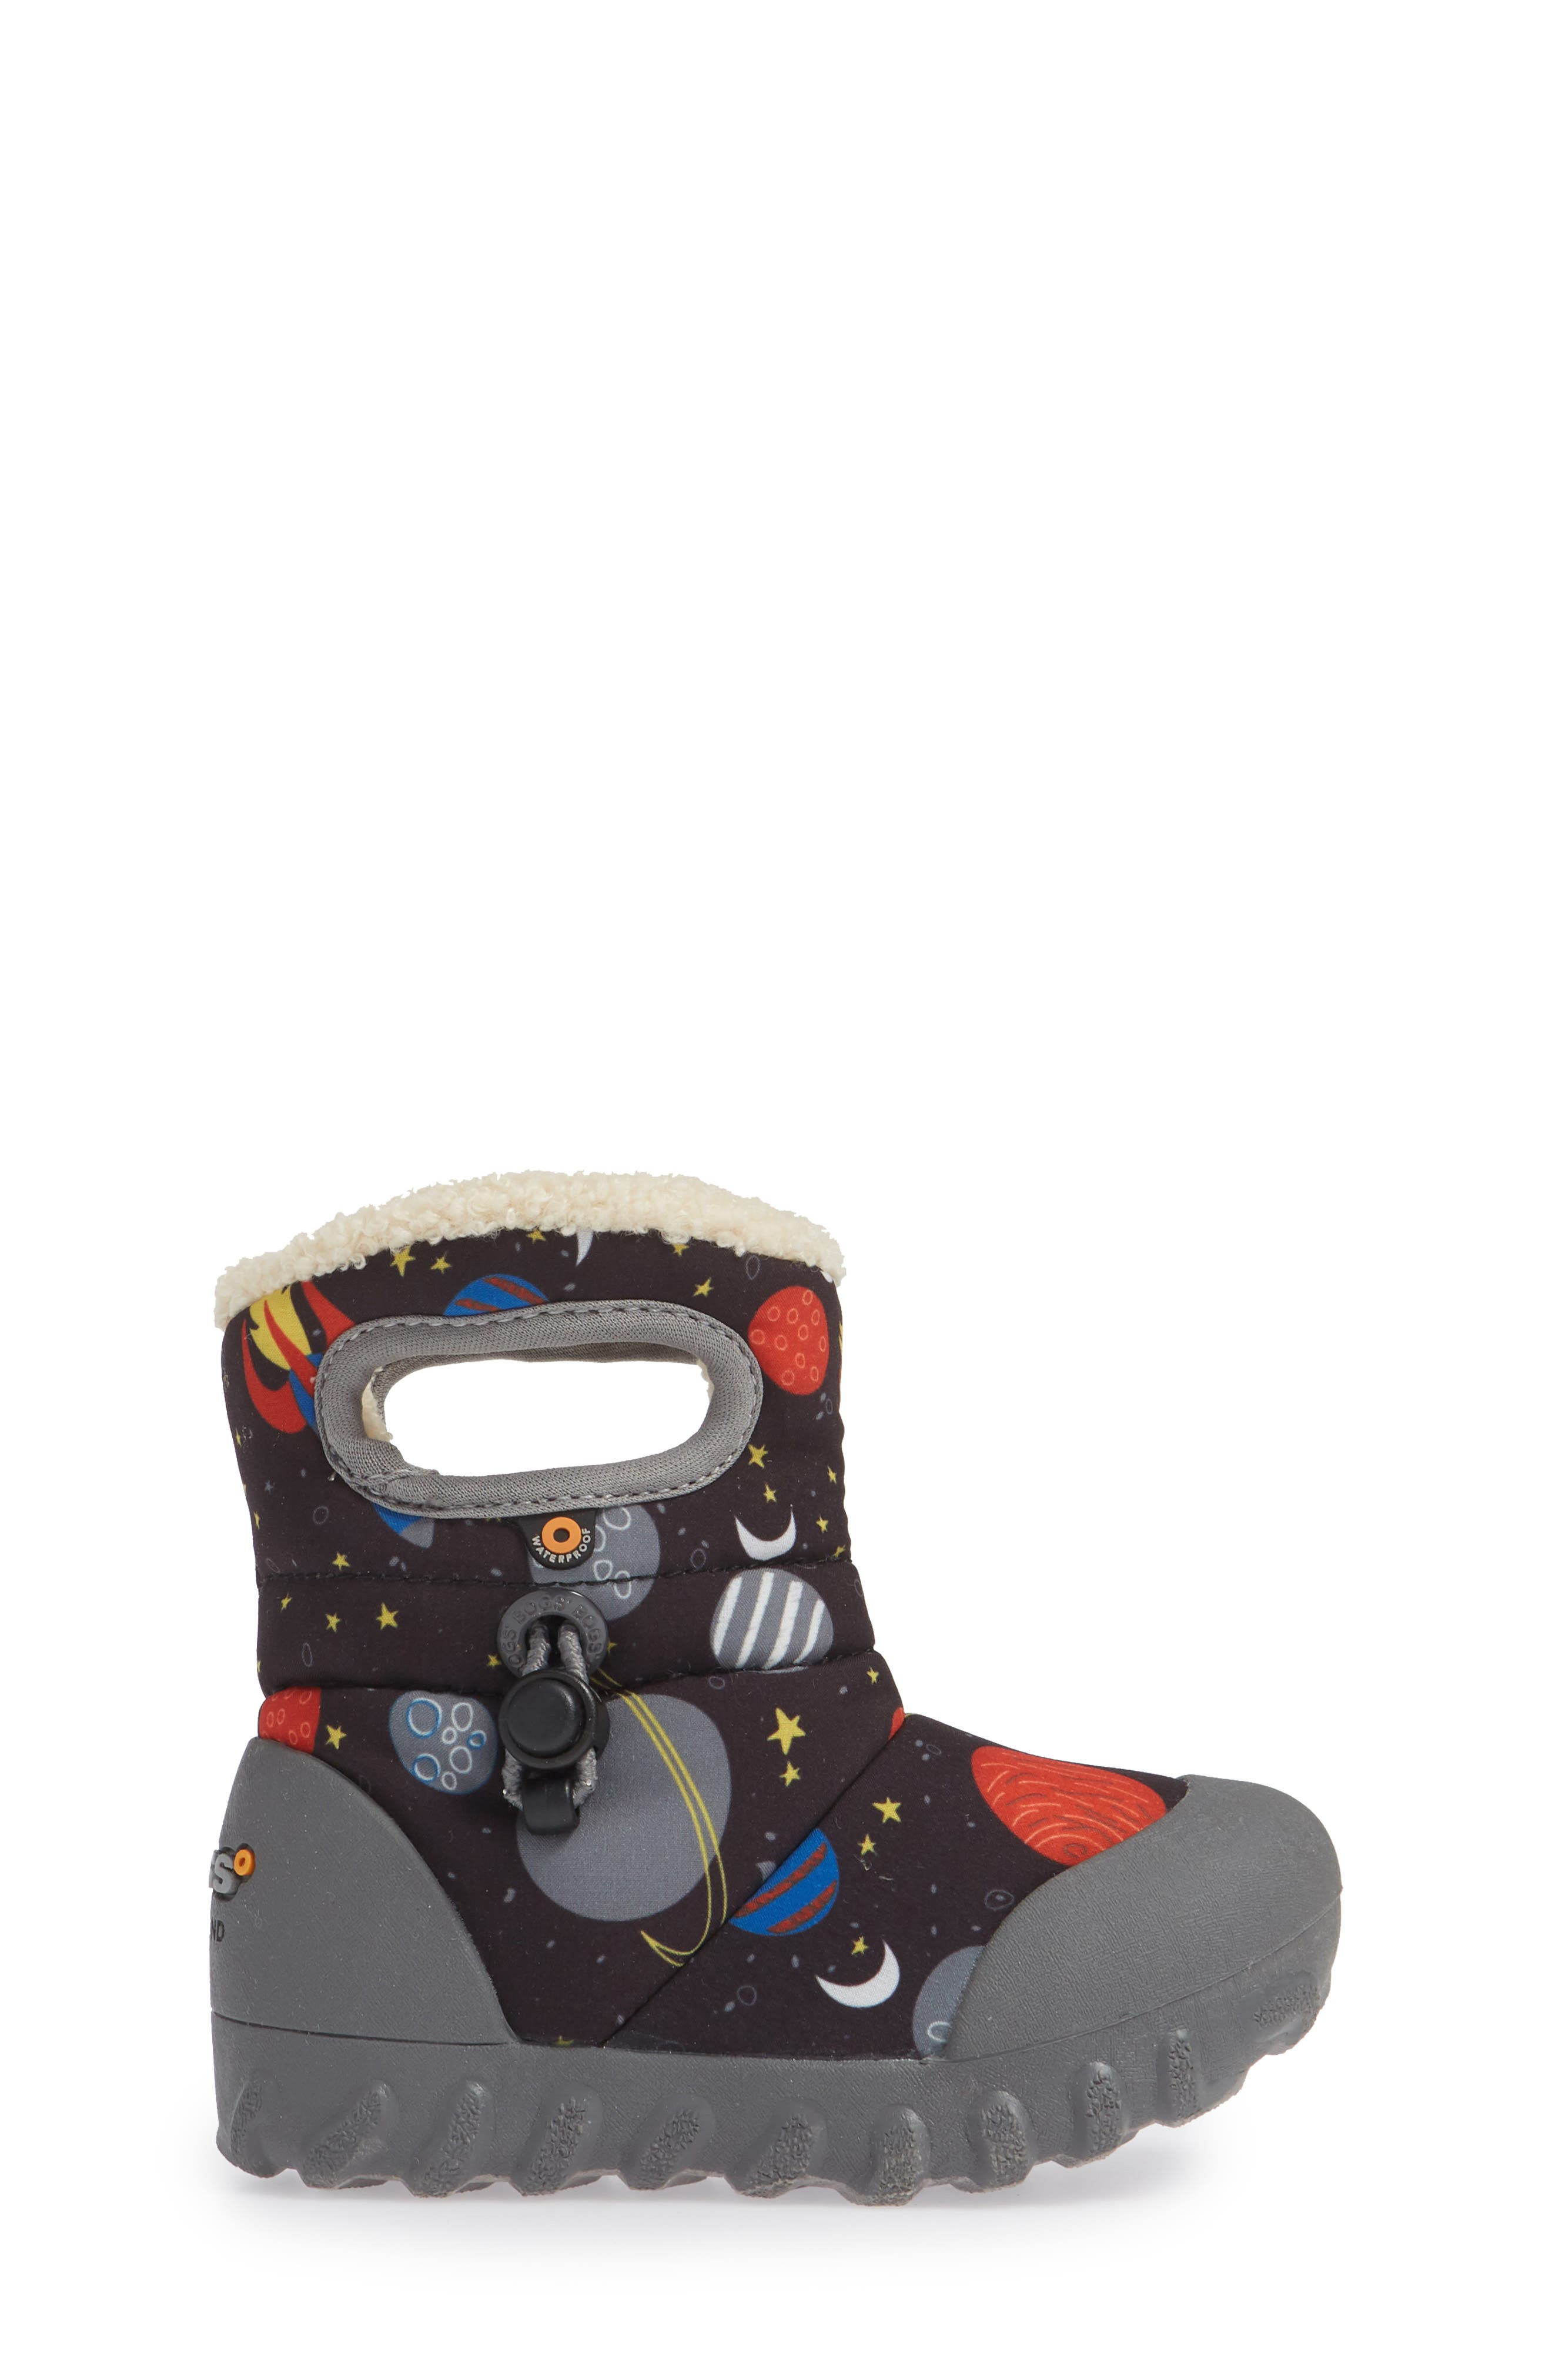 BOGS, B-MOC Space Waterproof Insulated Faux Fur Boot, Alternate thumbnail 3, color, BLACK MULTI